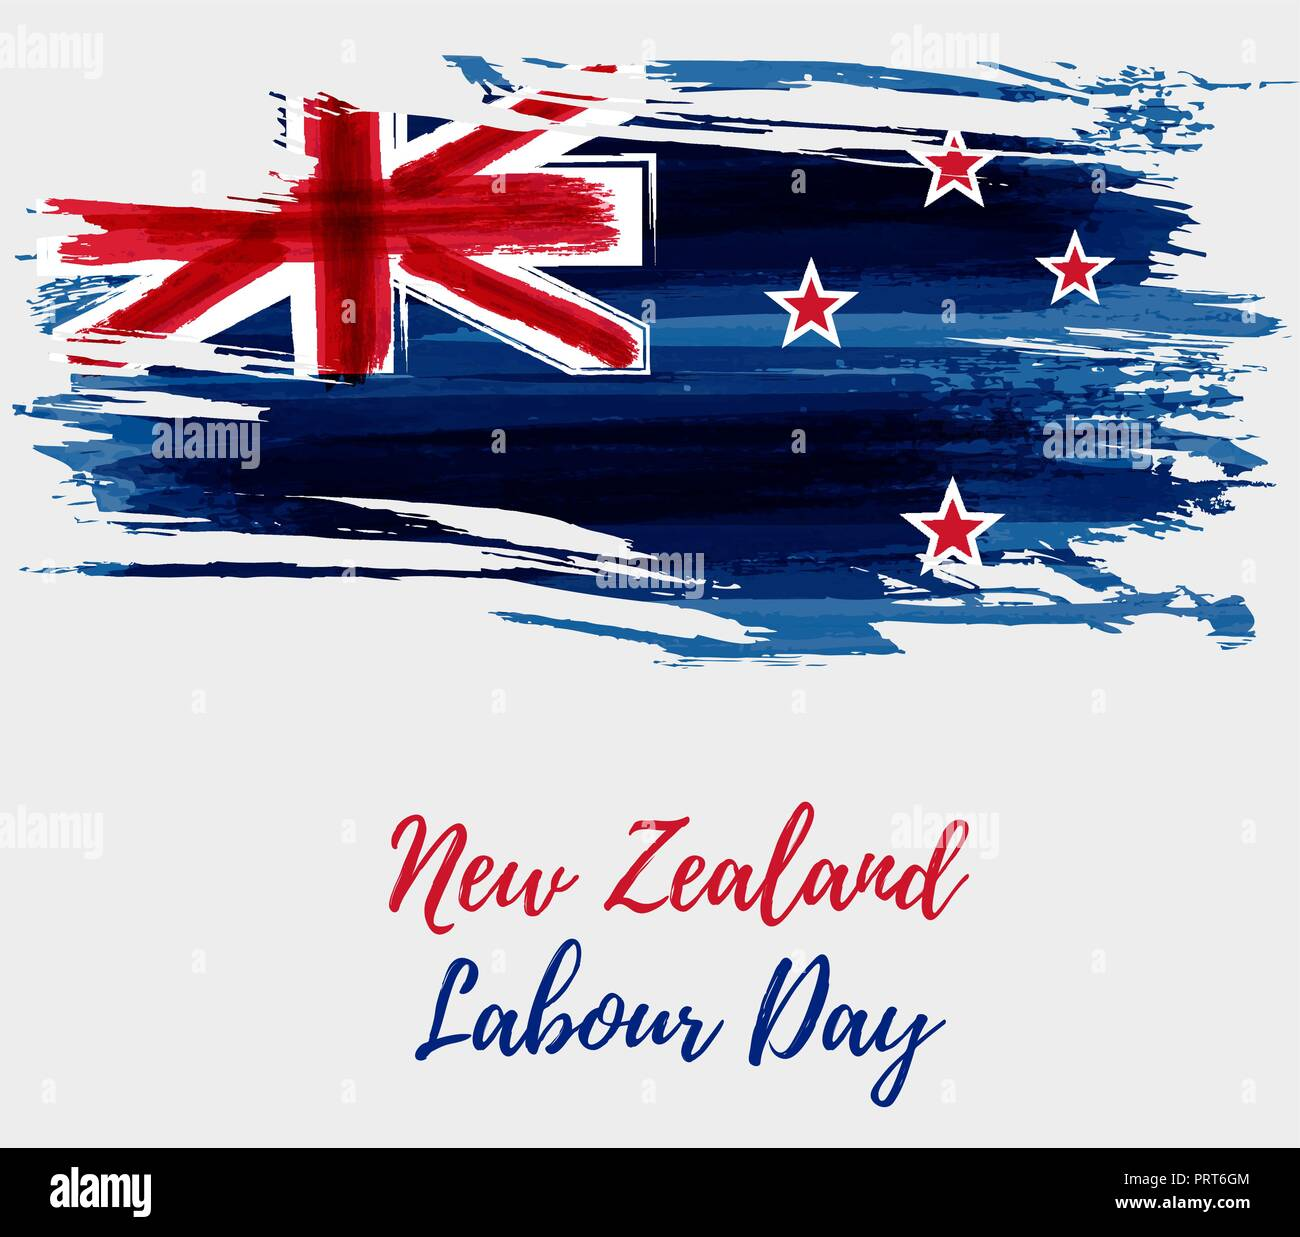 New Zealand Labour Day Holiday Background Abstract Painted Grunge